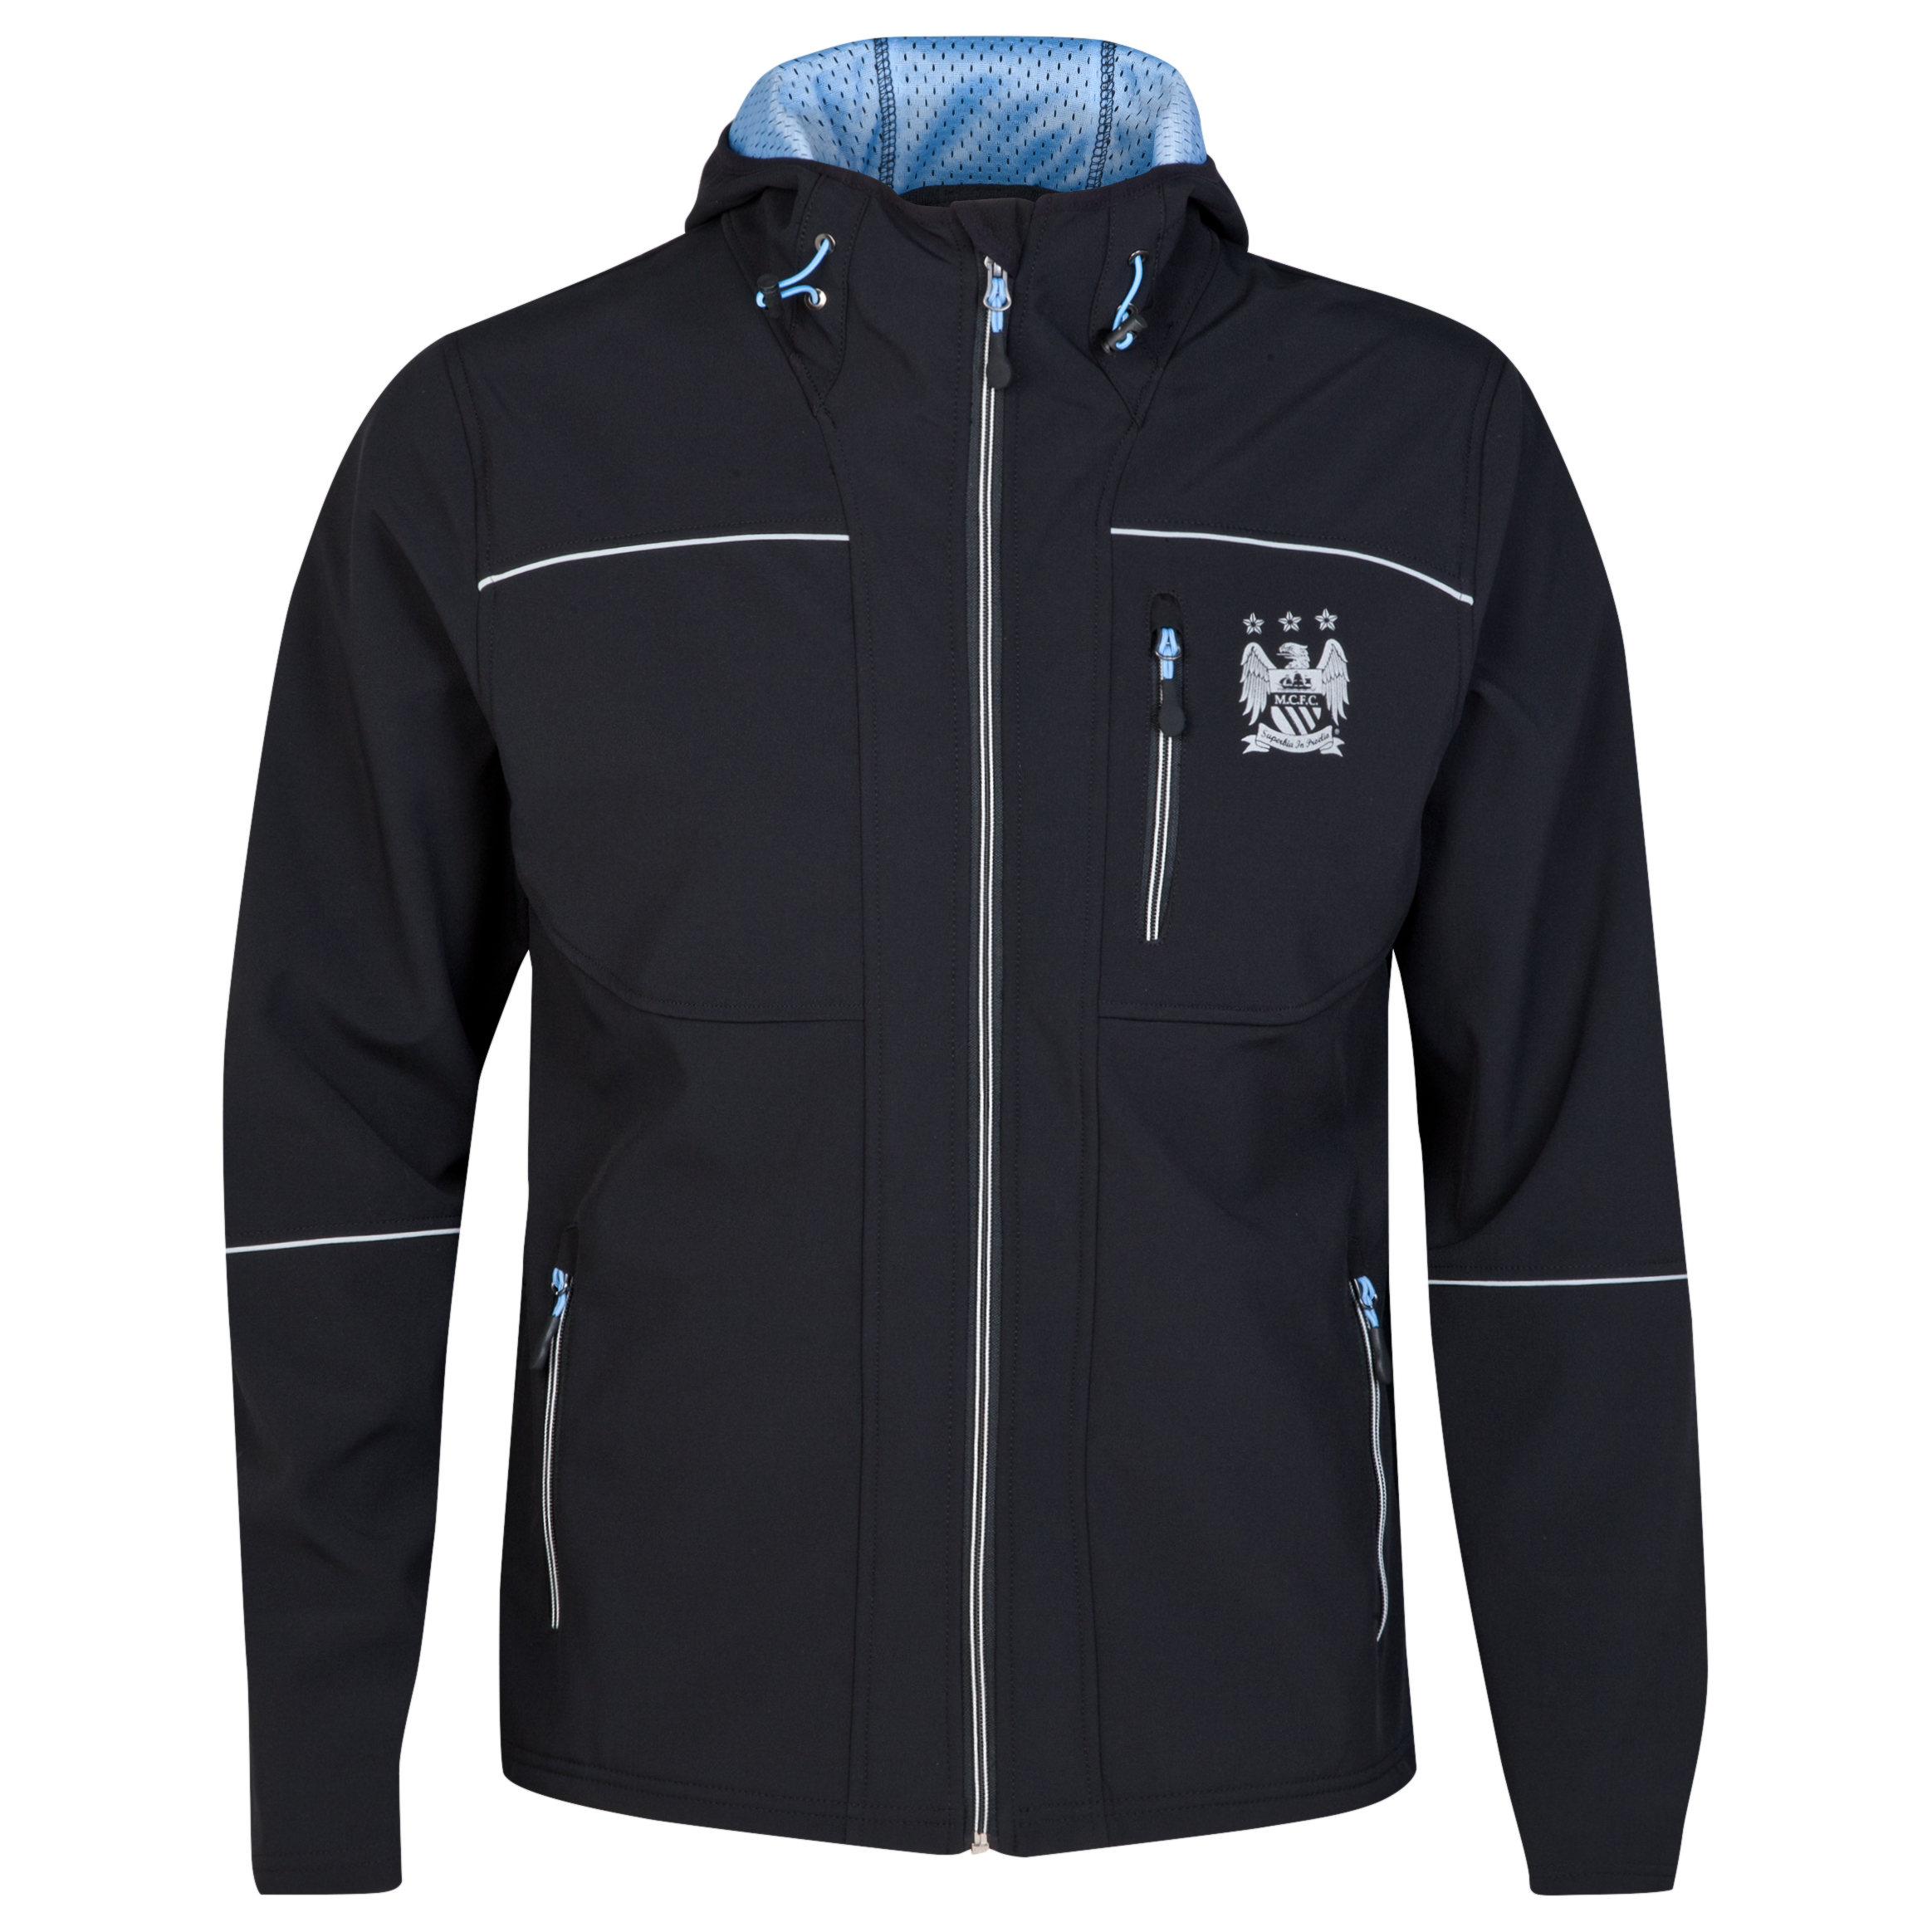 Manchester City Softshell Jacket - Black - Mens